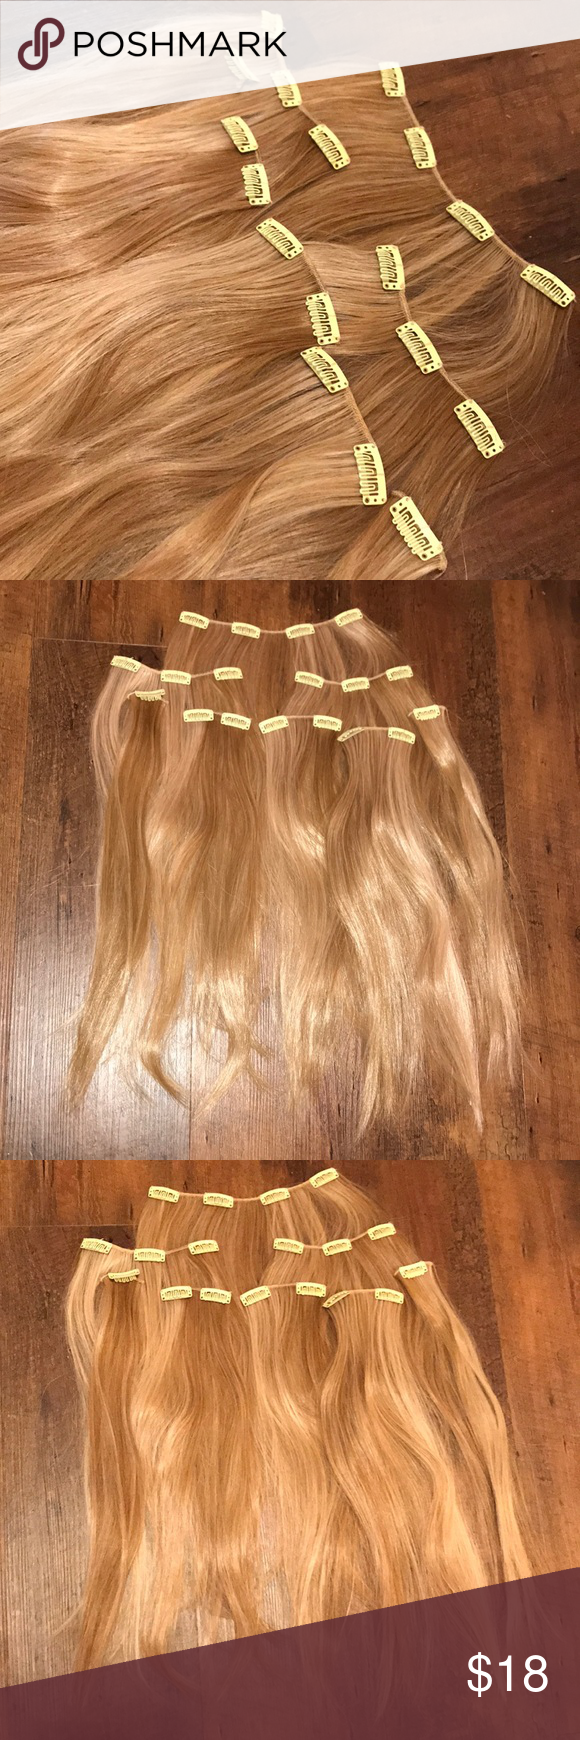 8 Piece Synthetic Hair Extensions 14 This 8 Piece Synthetic Clip On